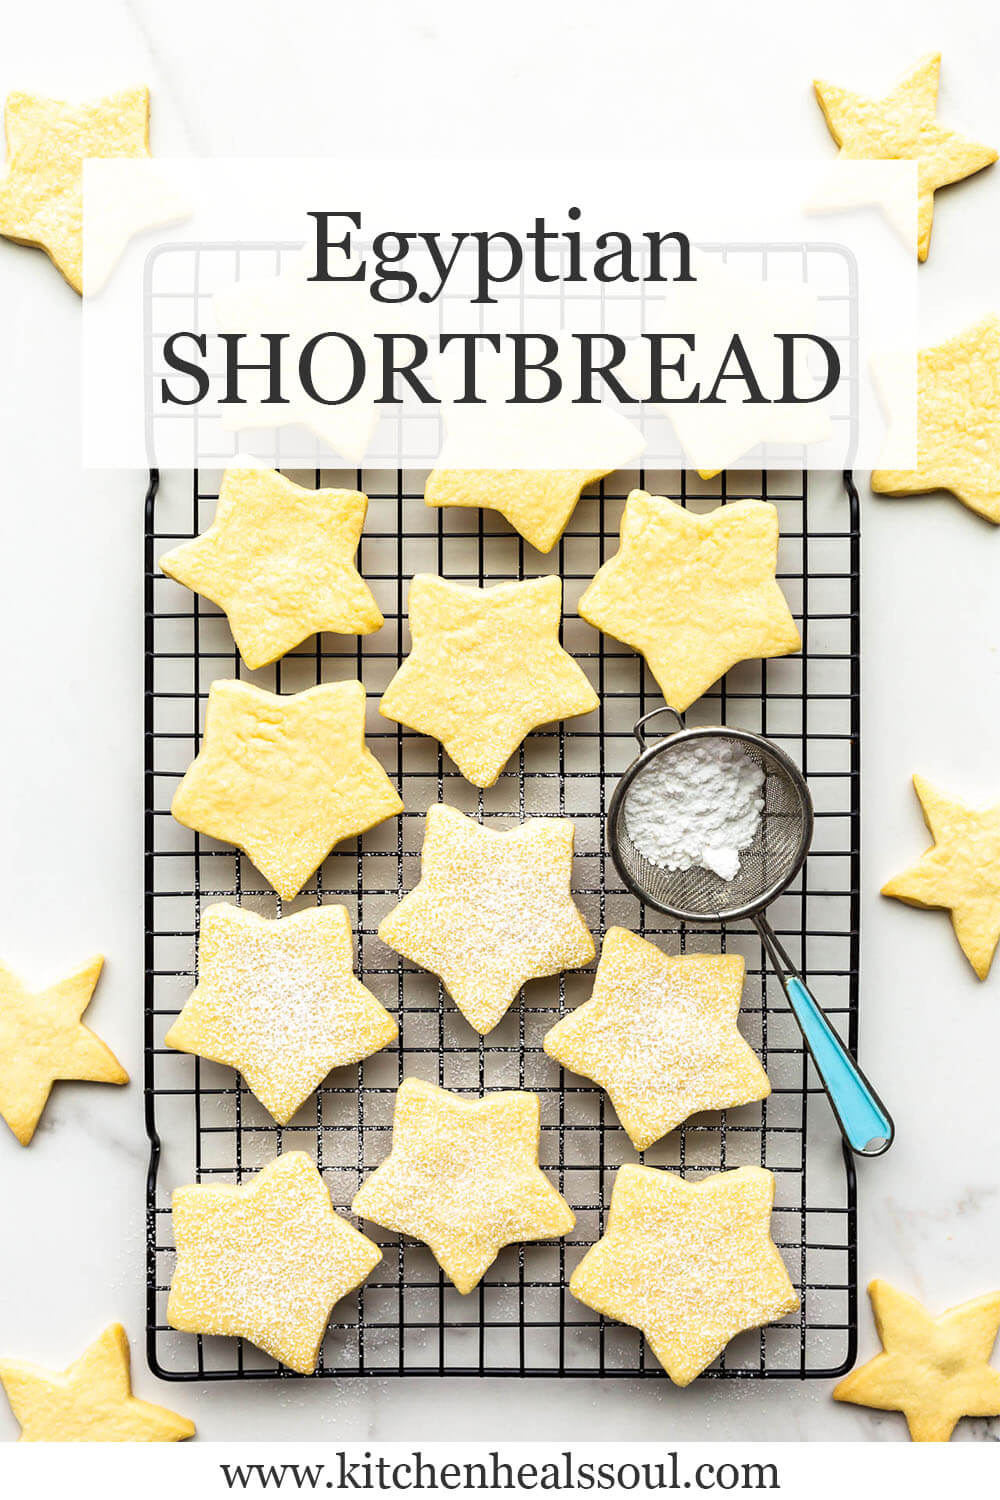 Star cookies on a black cooling rack being sprinkled with icing sugar.